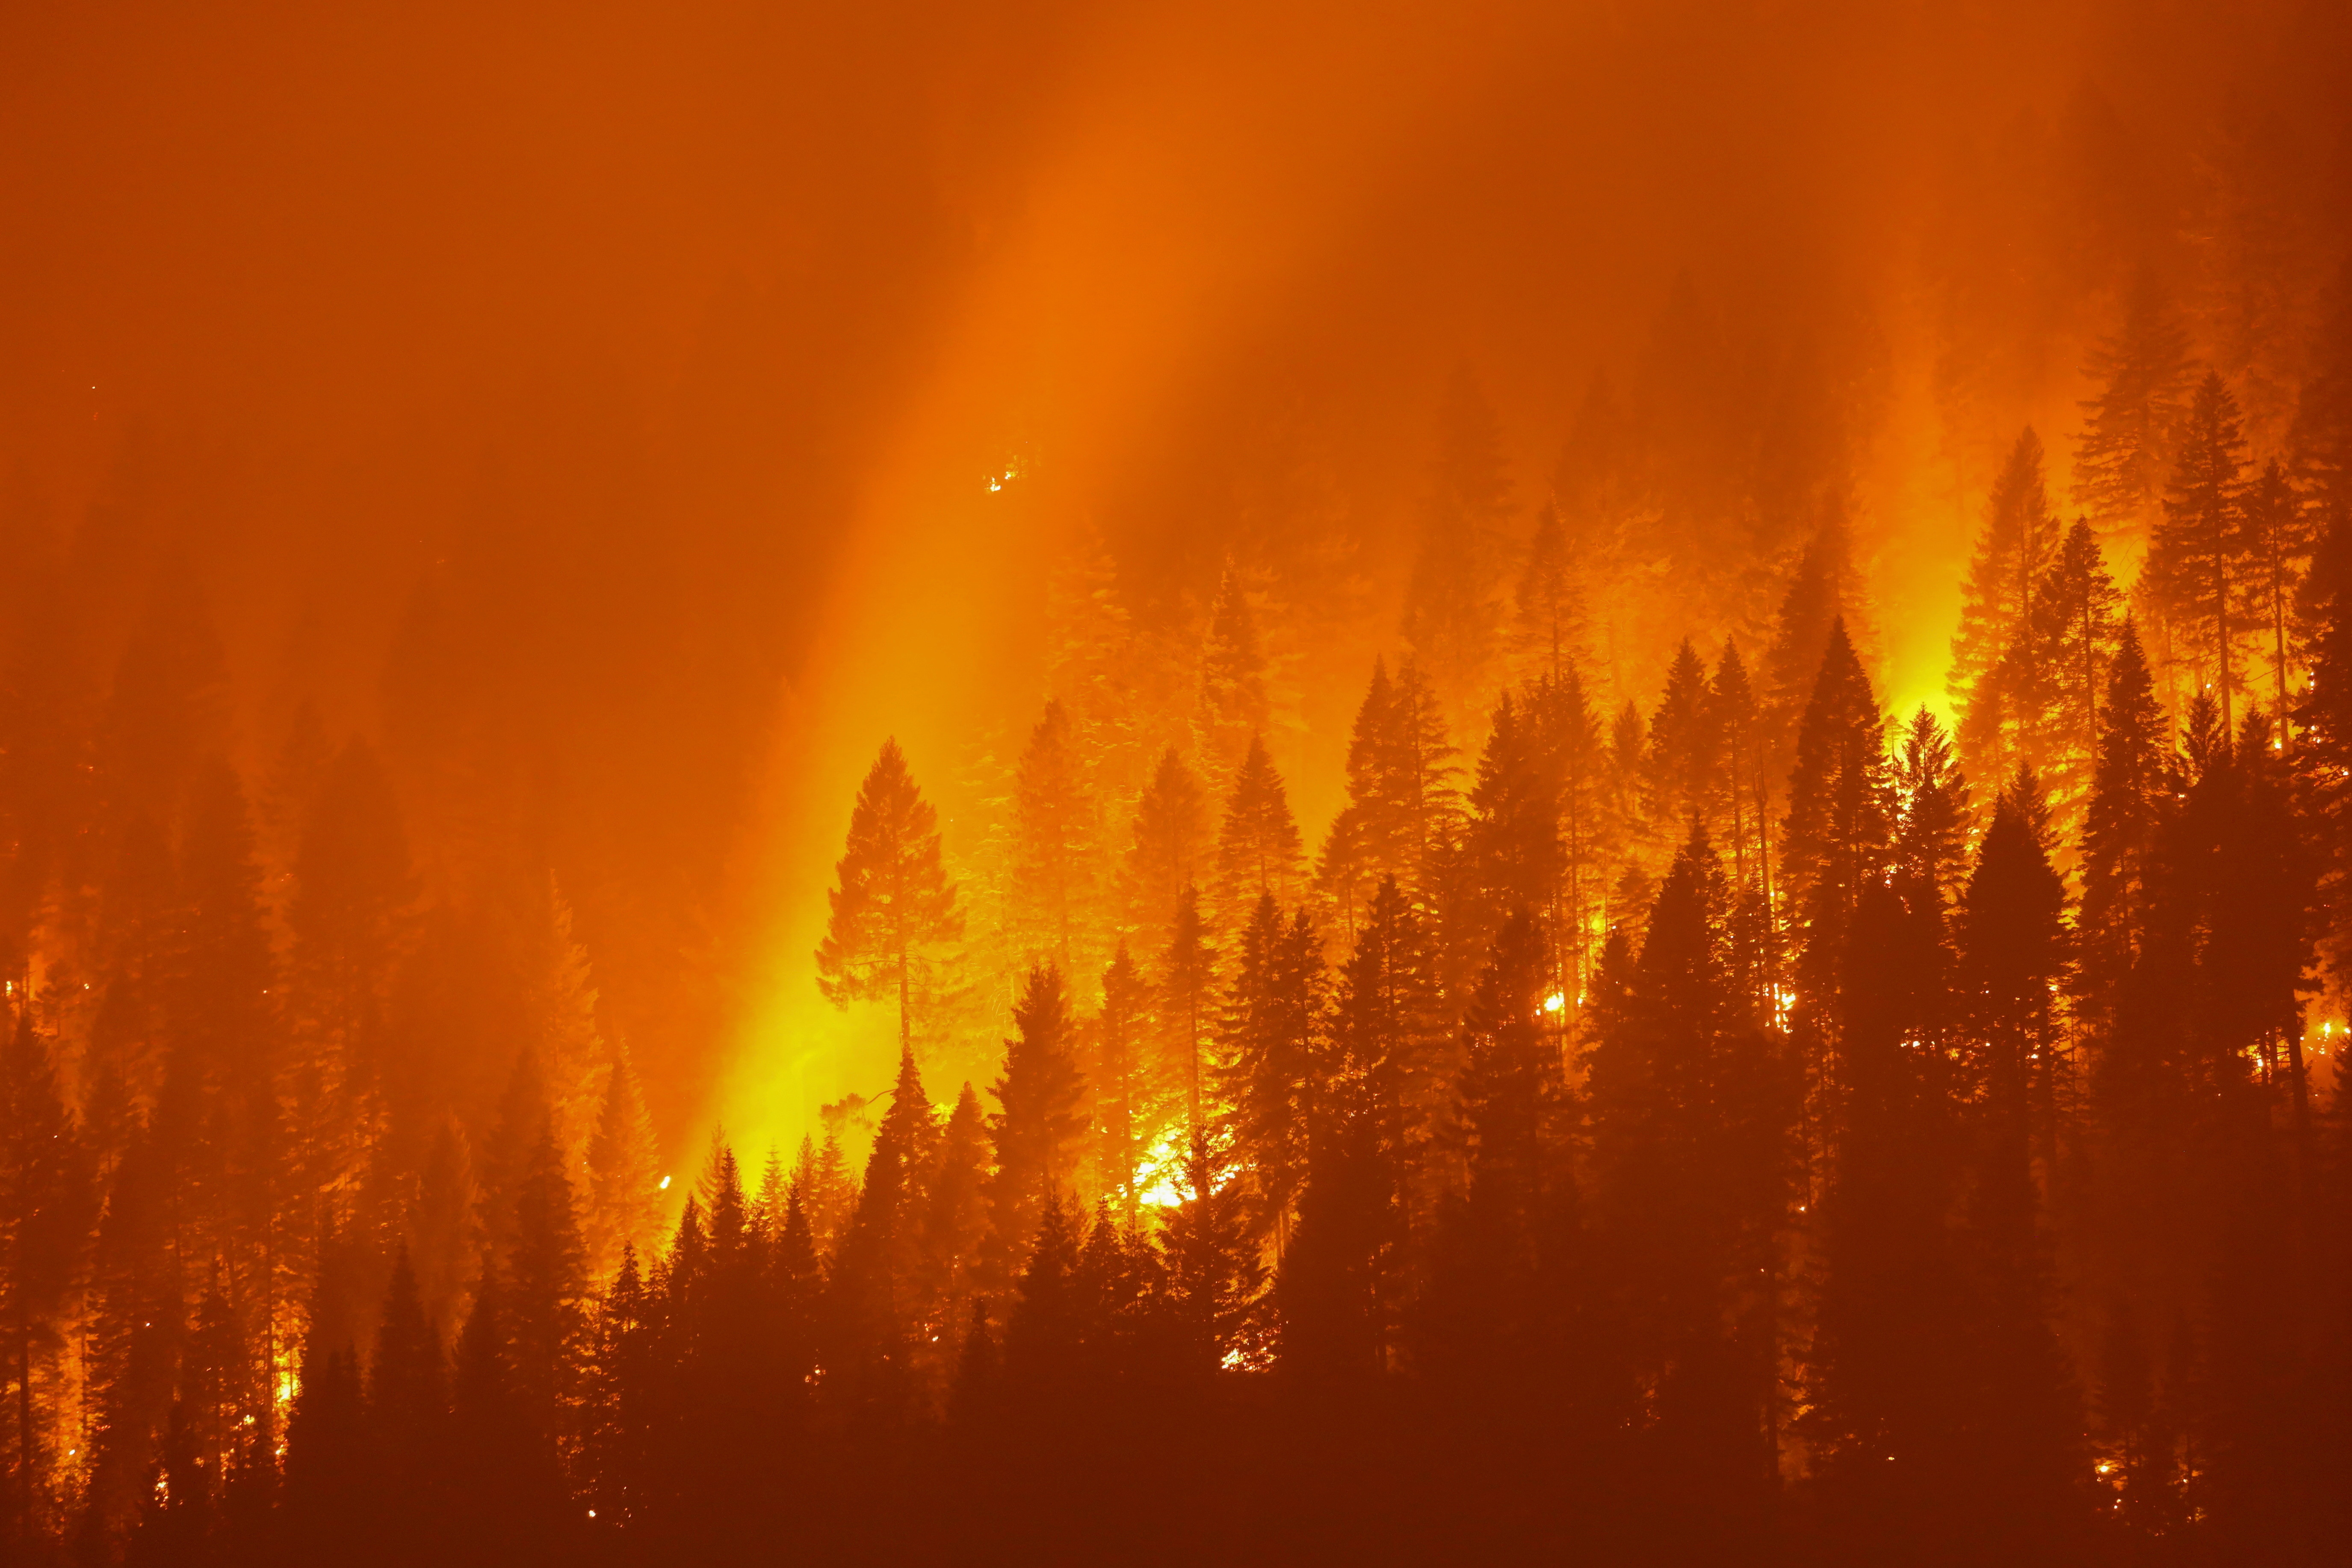 the Dixie Fire, covering over 200,000 acres, burns at night in Taylorsville, California, U.S., July 27, 2021